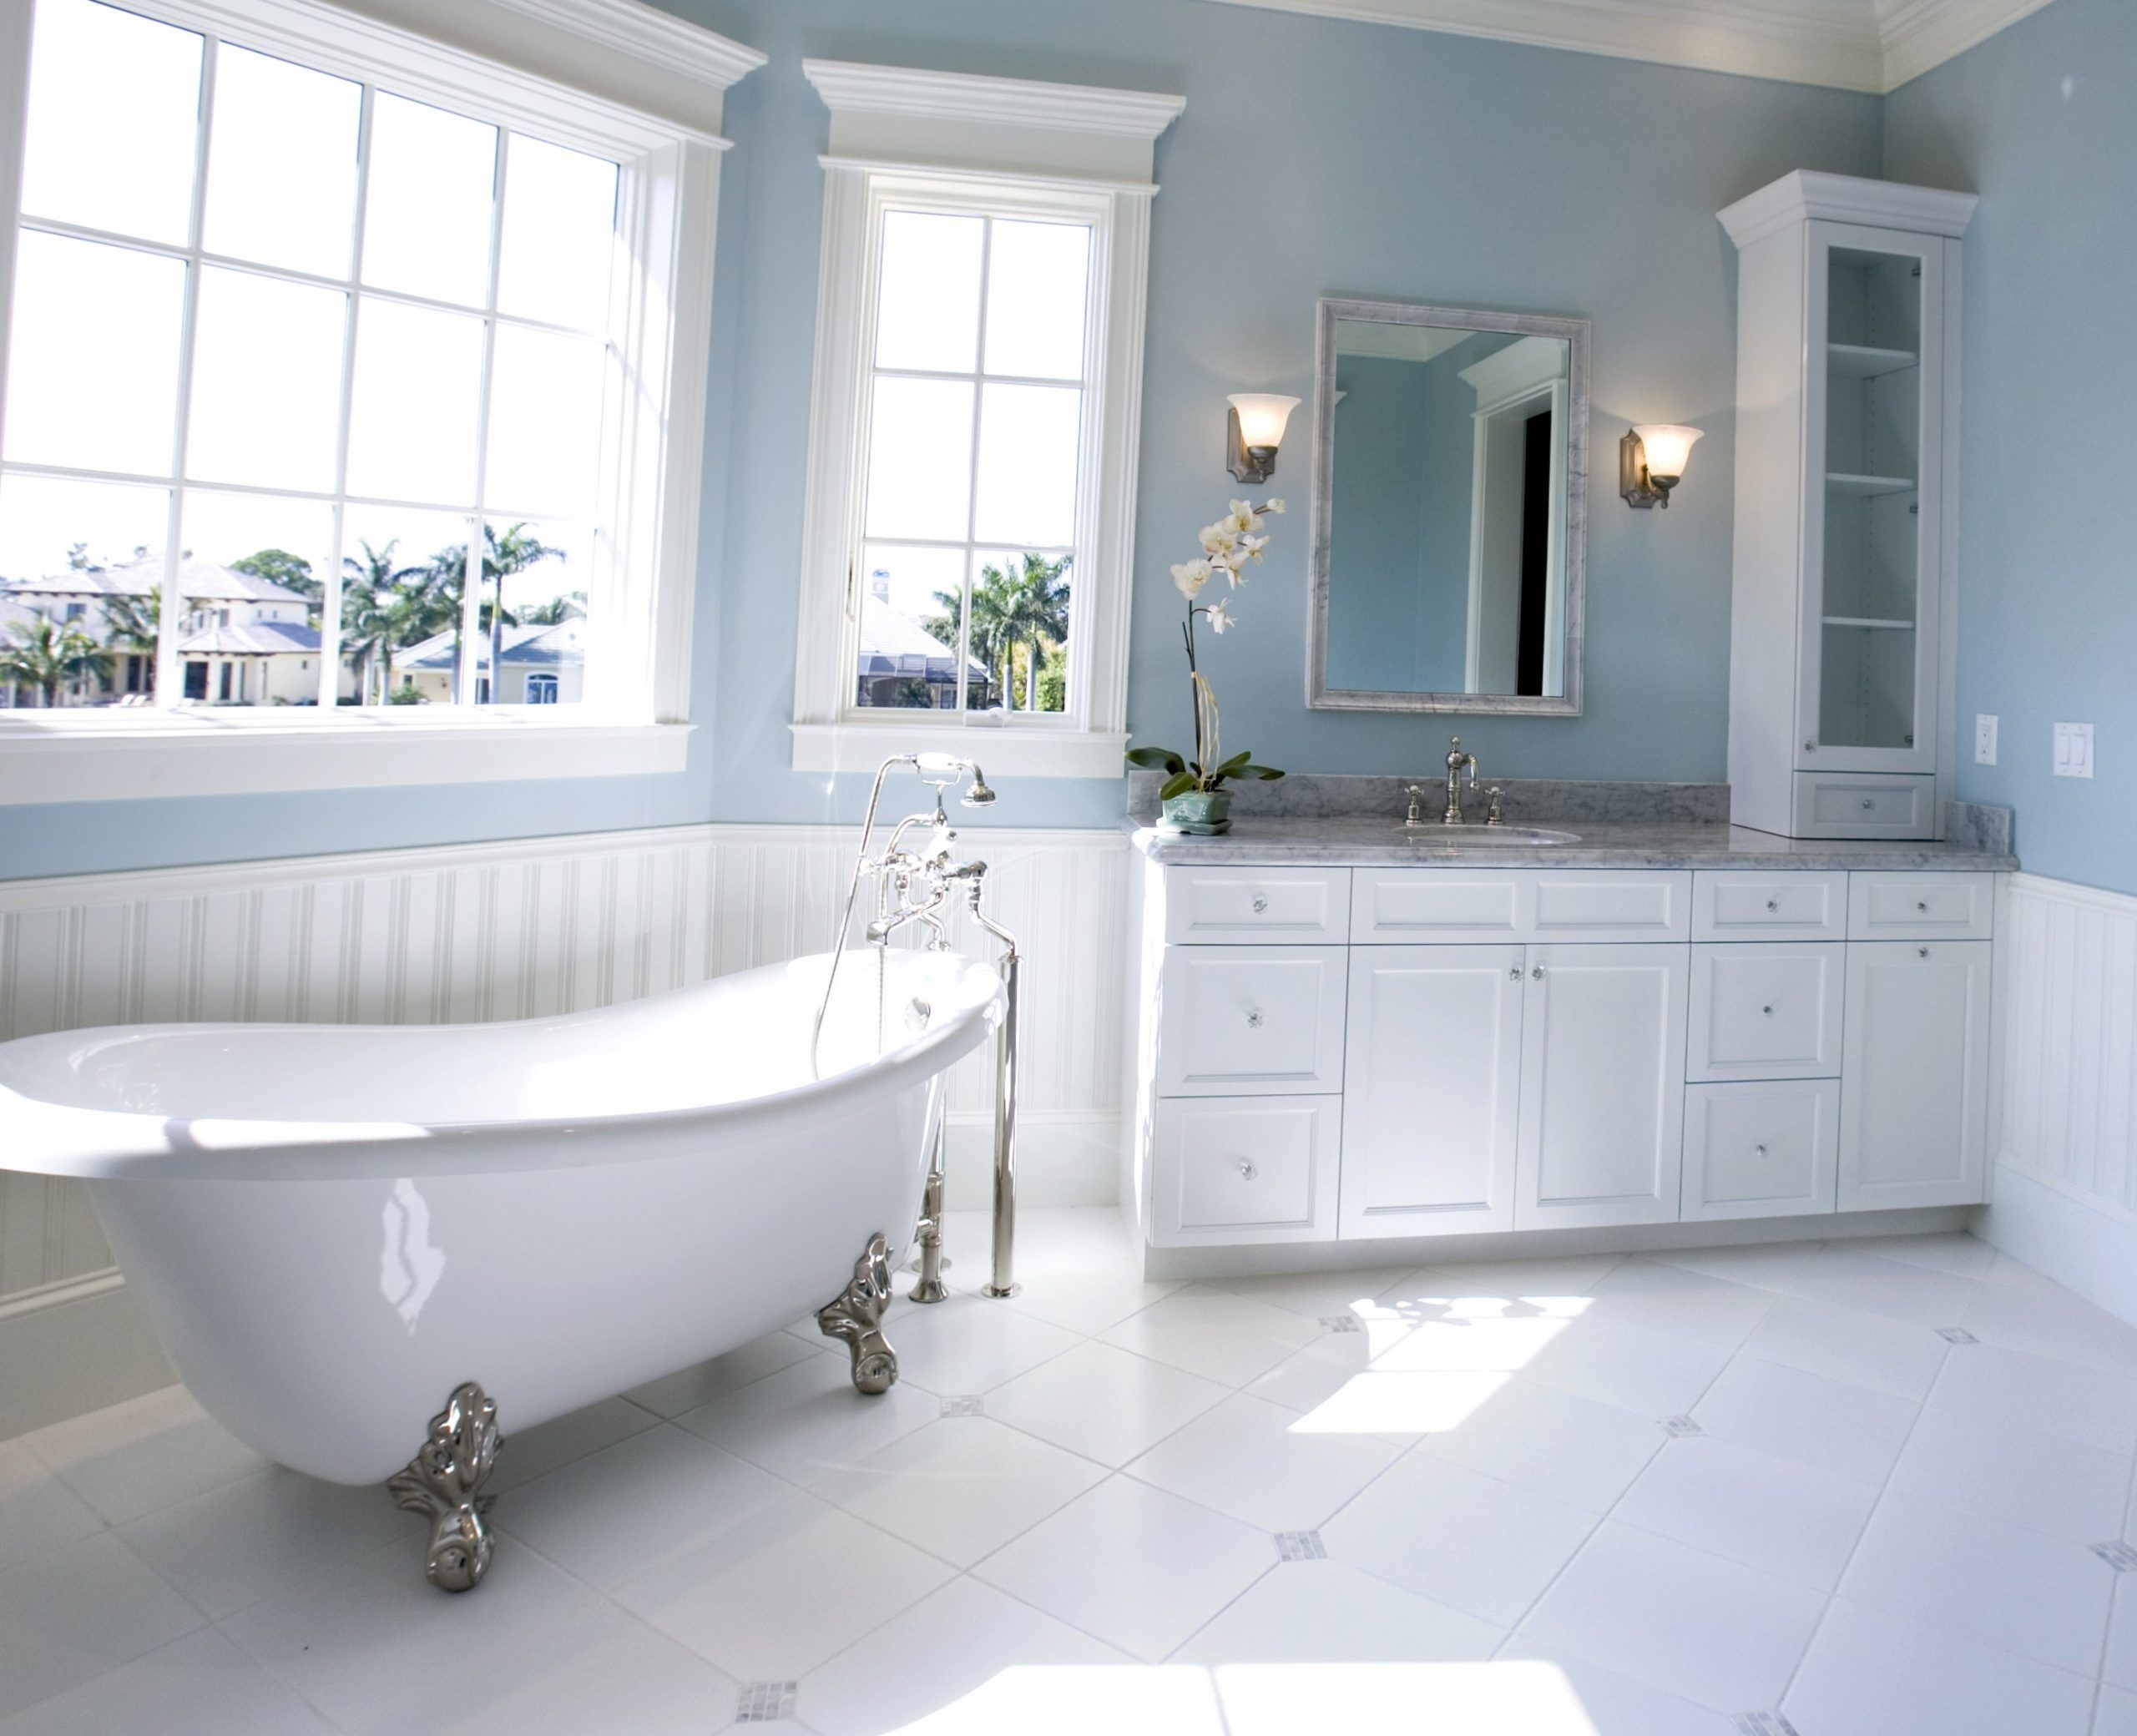 Find 10 Two Tone Bathroom Colors Some Of The Cleverest And Inspiring For Your House For You In 2020 Modern Bathroom Colours Blue Bathroom Decor Best Bathroom Colors